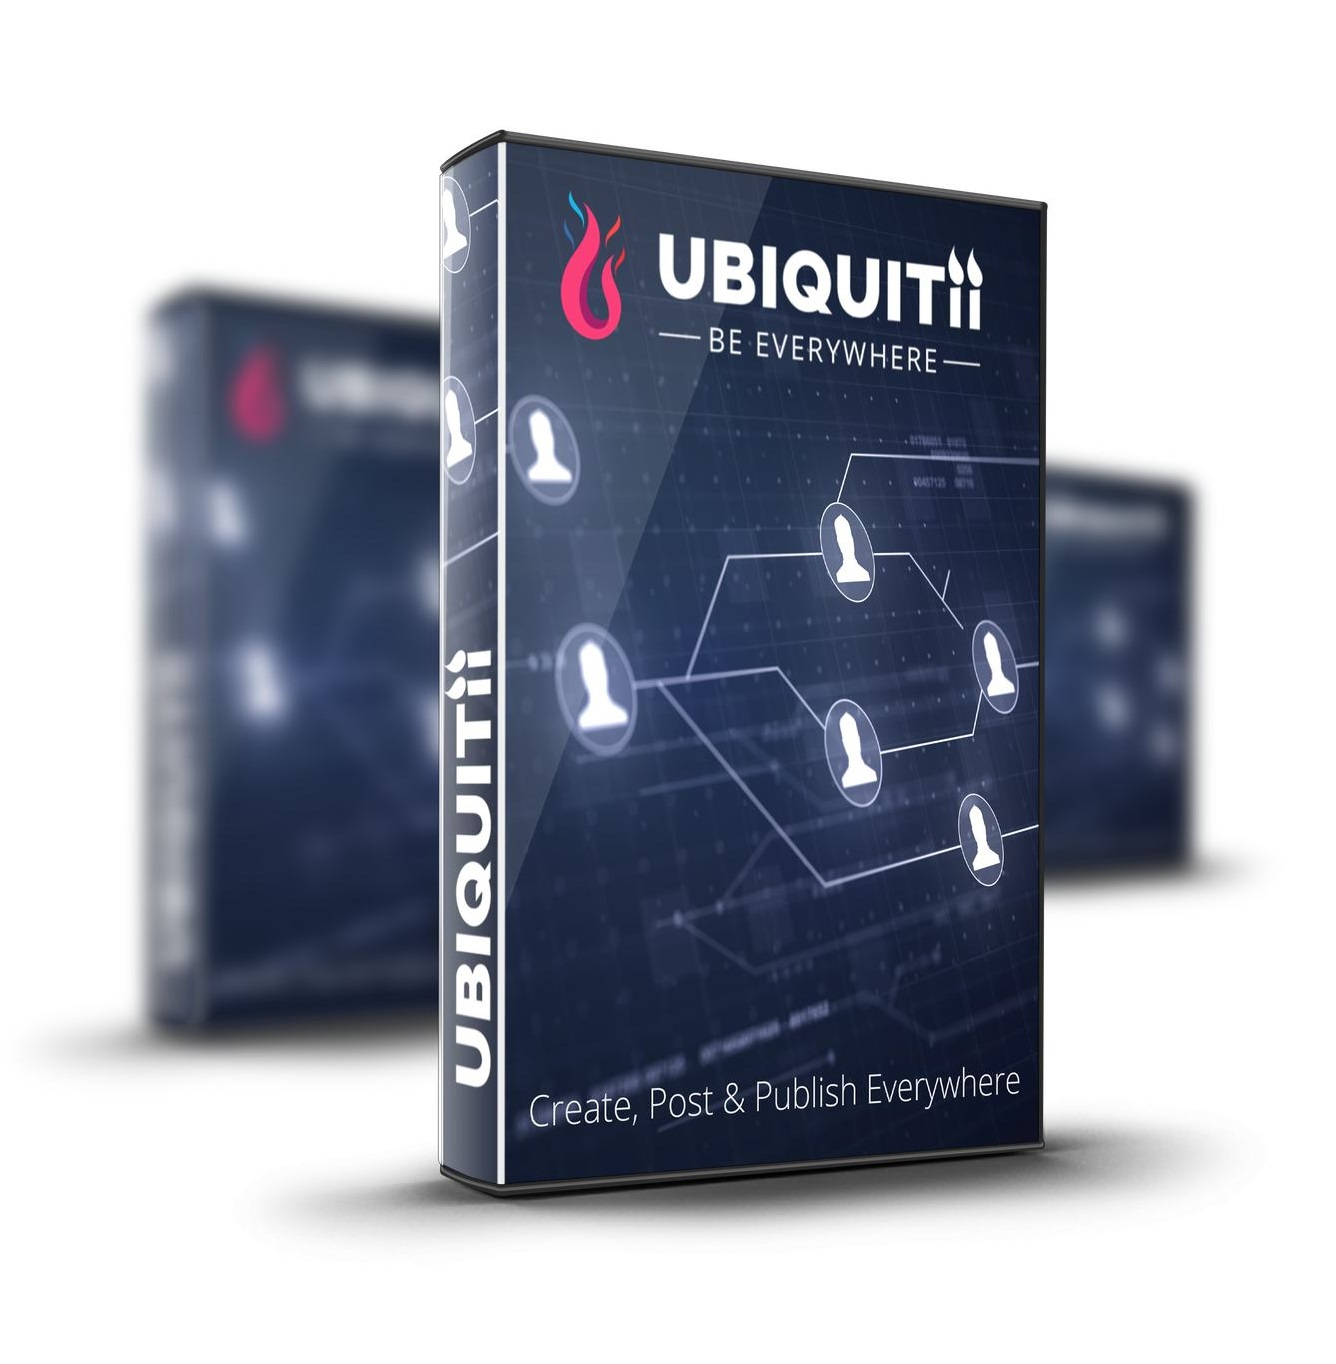 UBIQUITII Review